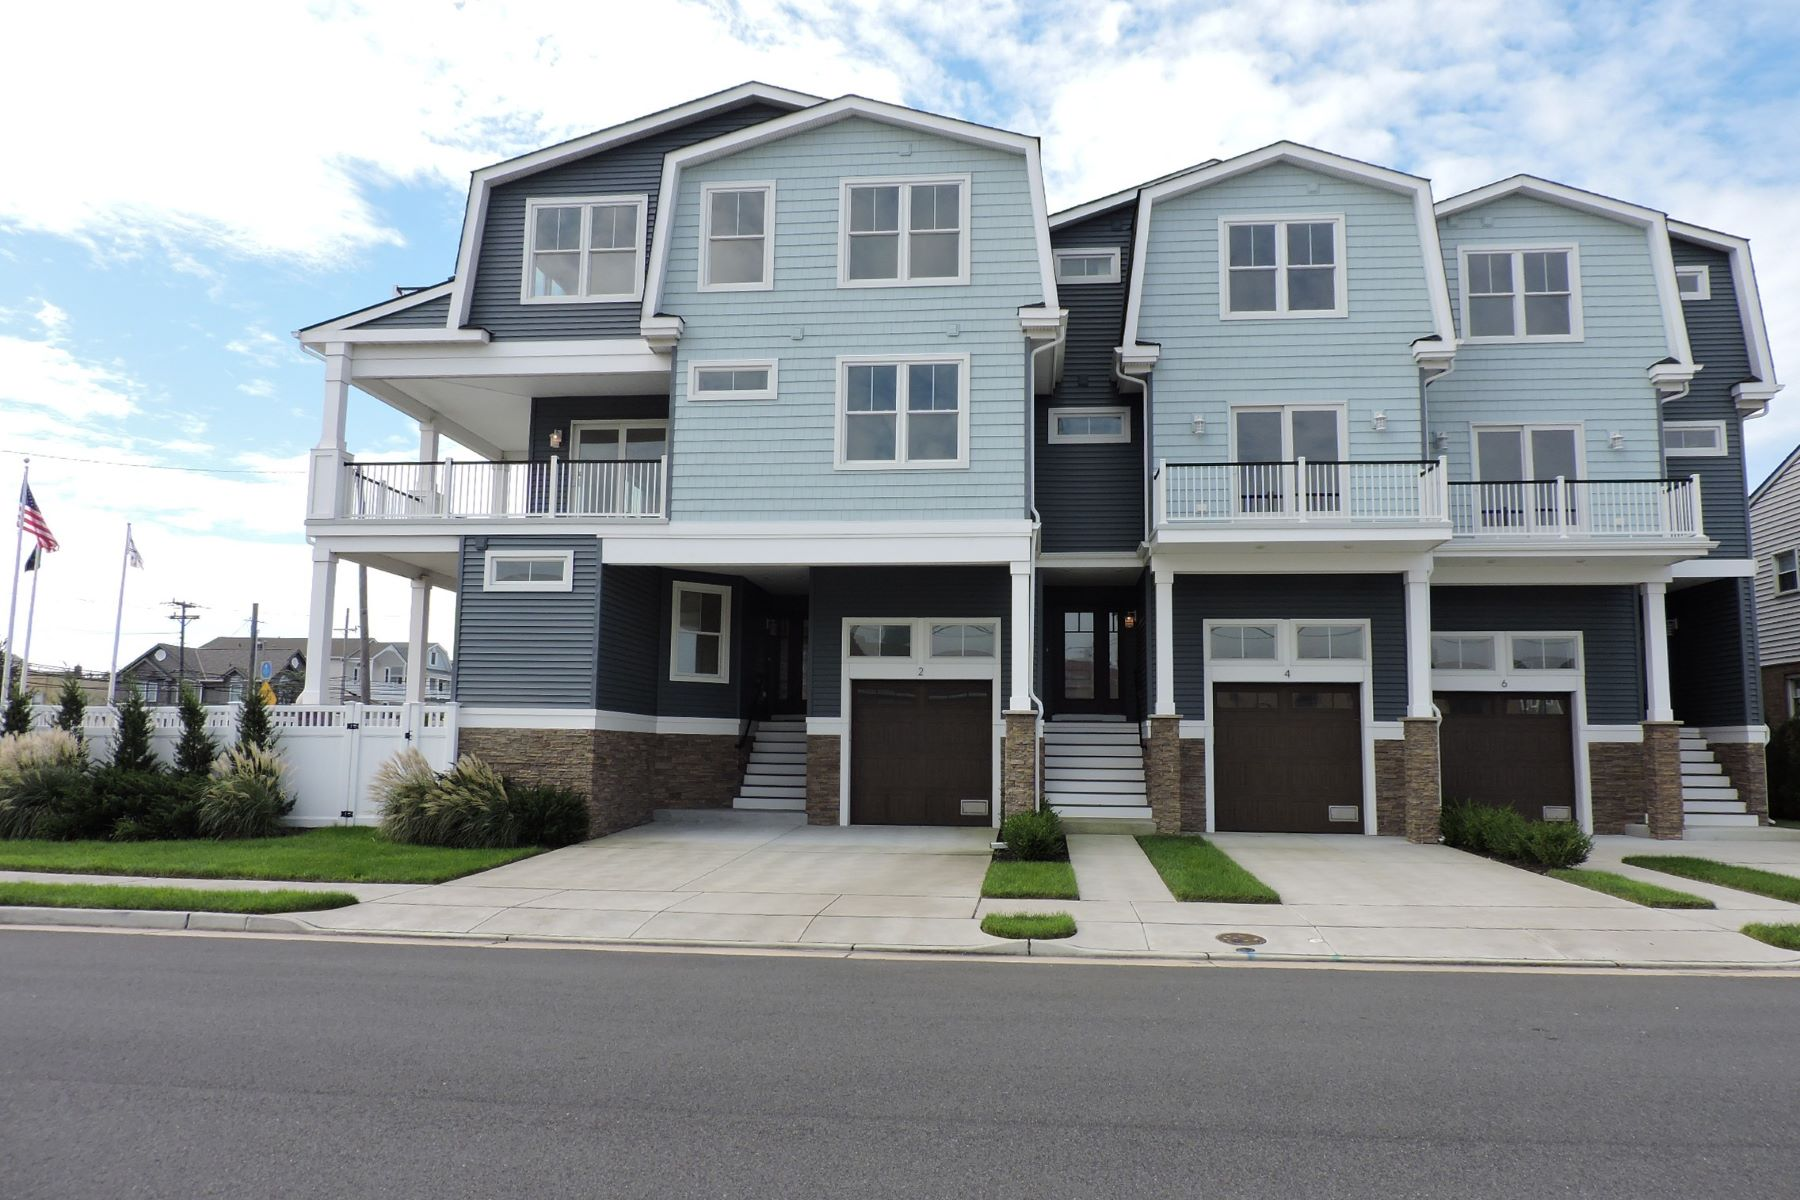 townhouses for Sale at 6 N 28th Ave Longport, New Jersey 08403 United States